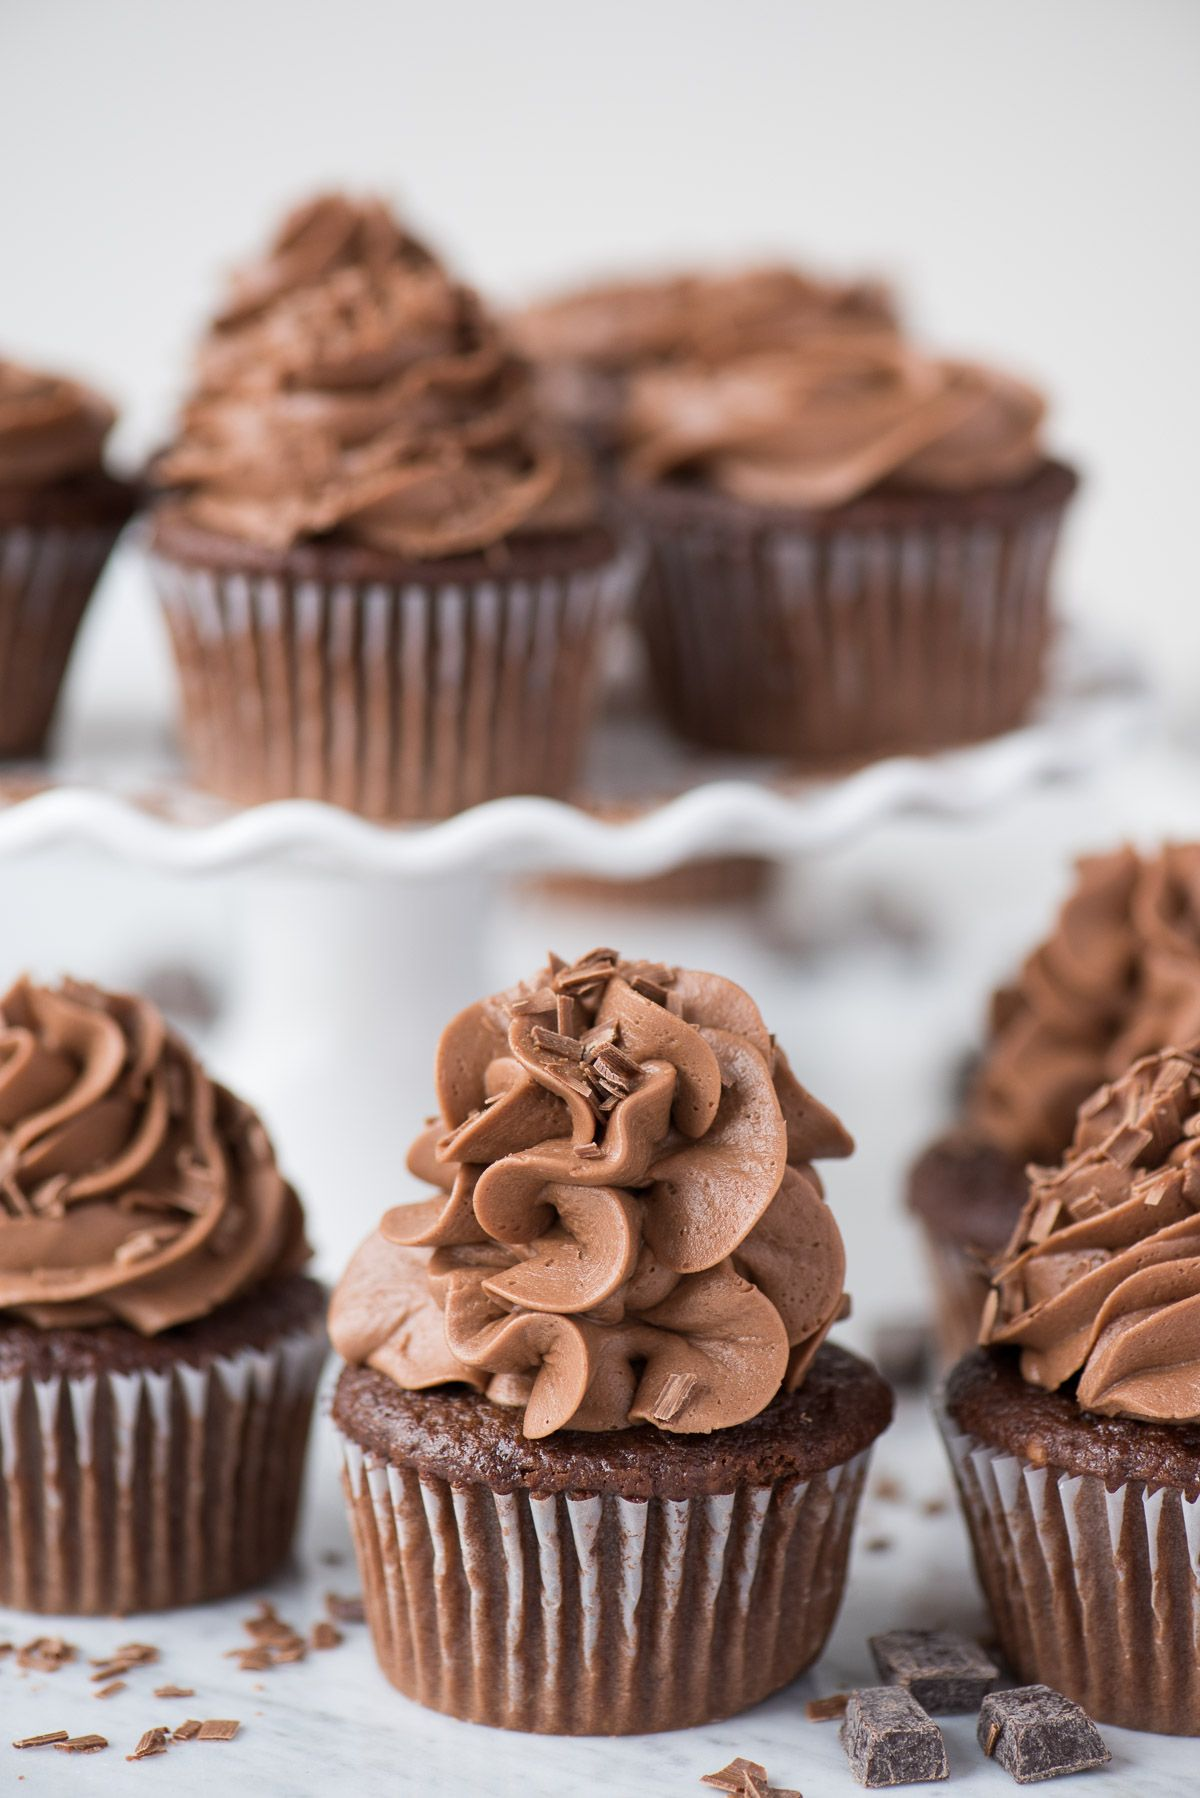 Bakery style doctored up chocolate cupcakes this is an